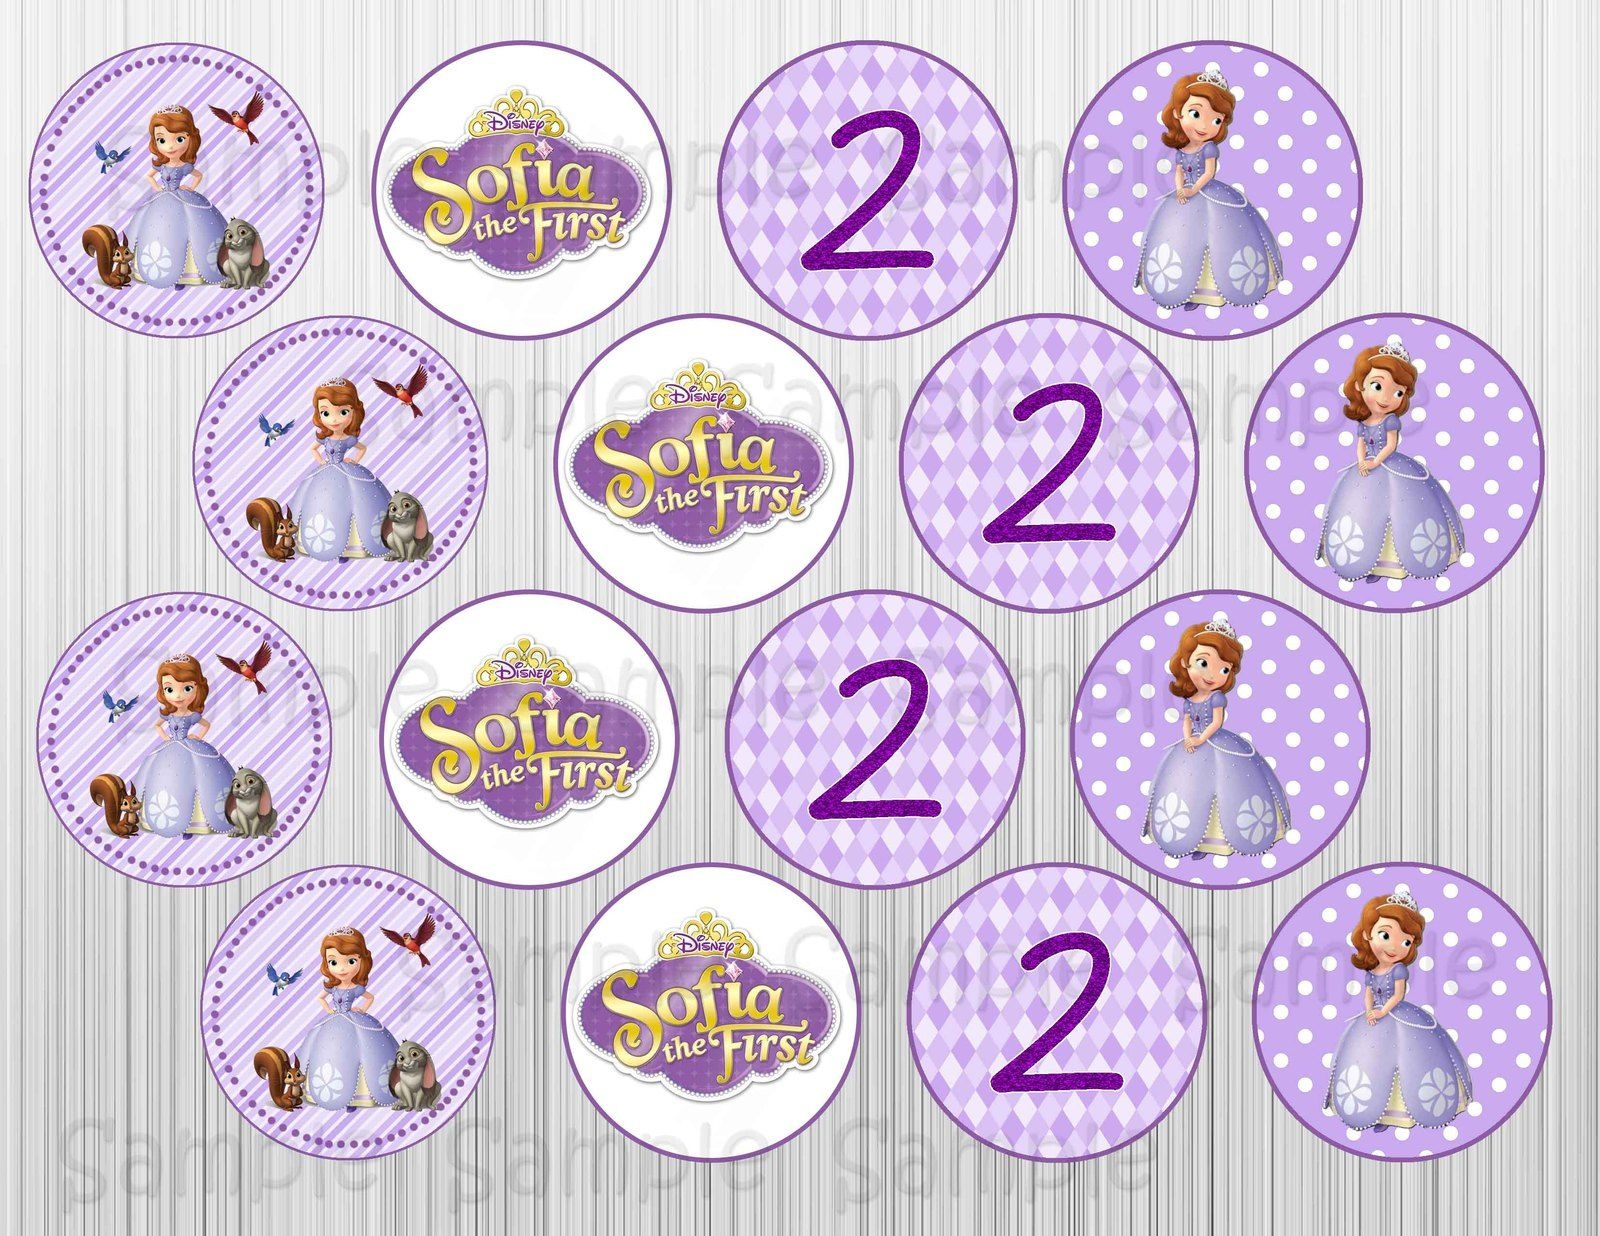 Sofia The First Printable Cupcake Toppers Cakepins | Ideas - Sofia The First Cupcake Toppers Free Printable